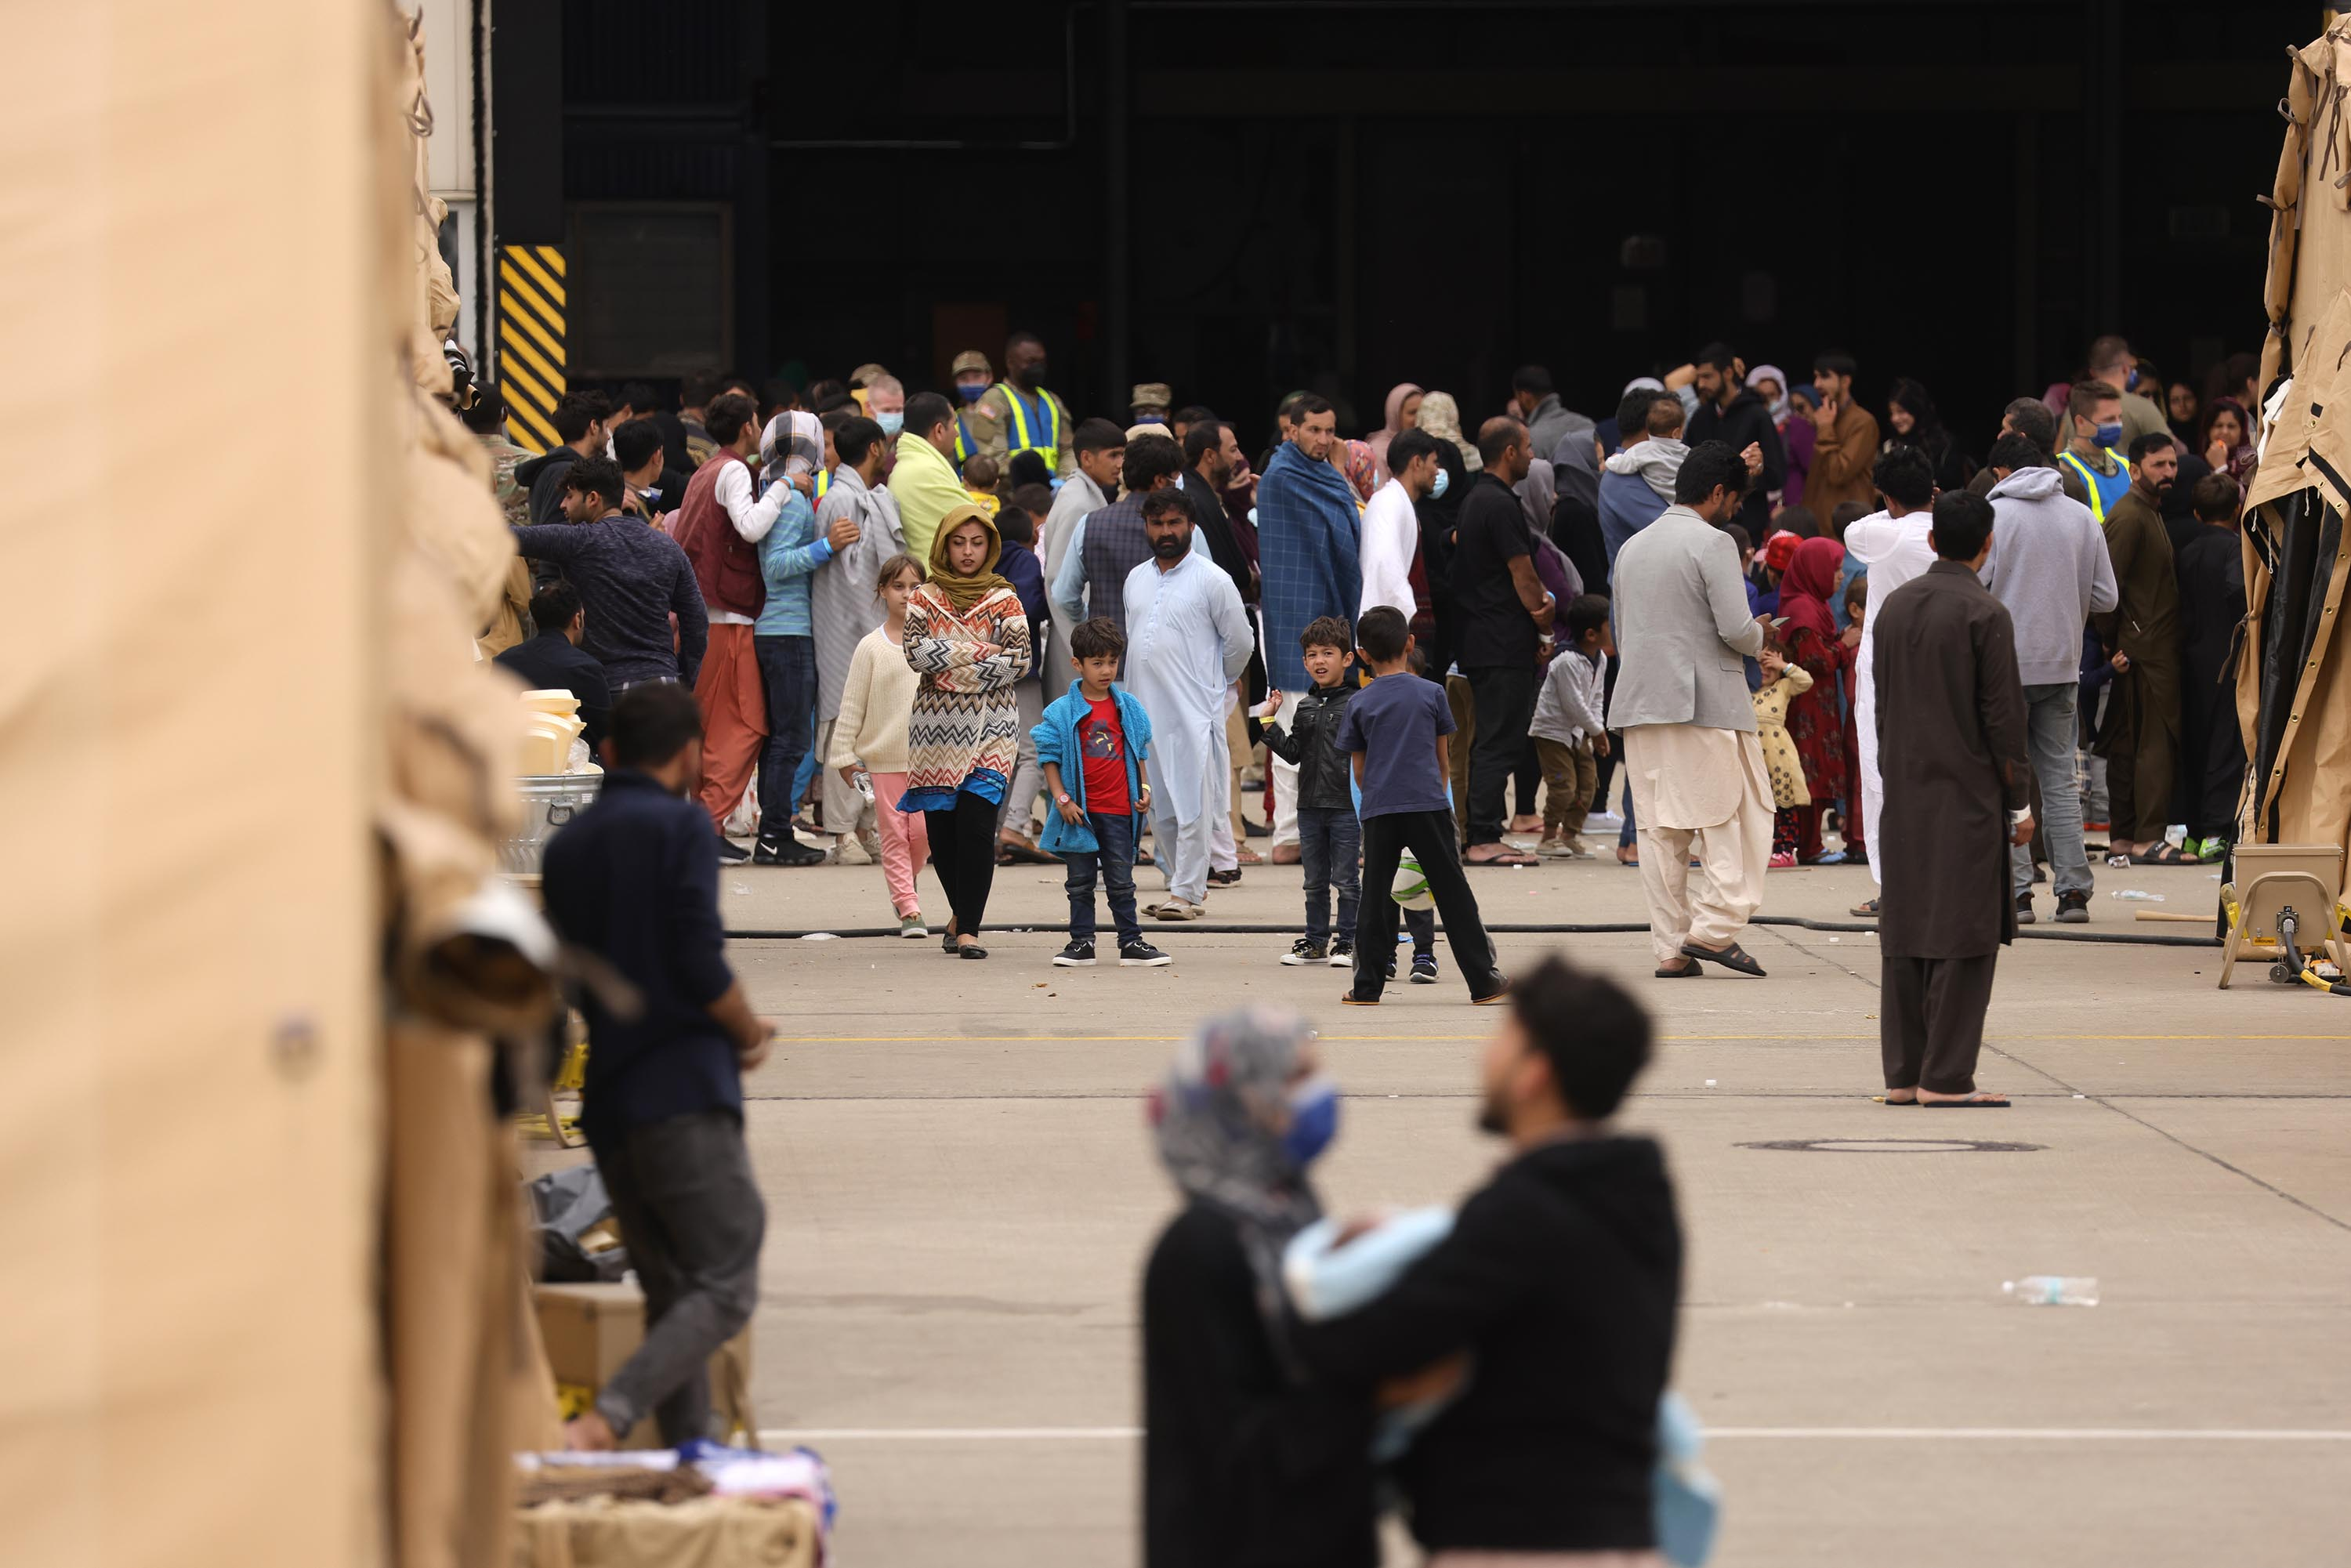 Evacuees from Afghanistan are seen at a temporary emergency shelter at the Ramstein Air Base on August 26, in Ramstein-Miesenbach, Germany.